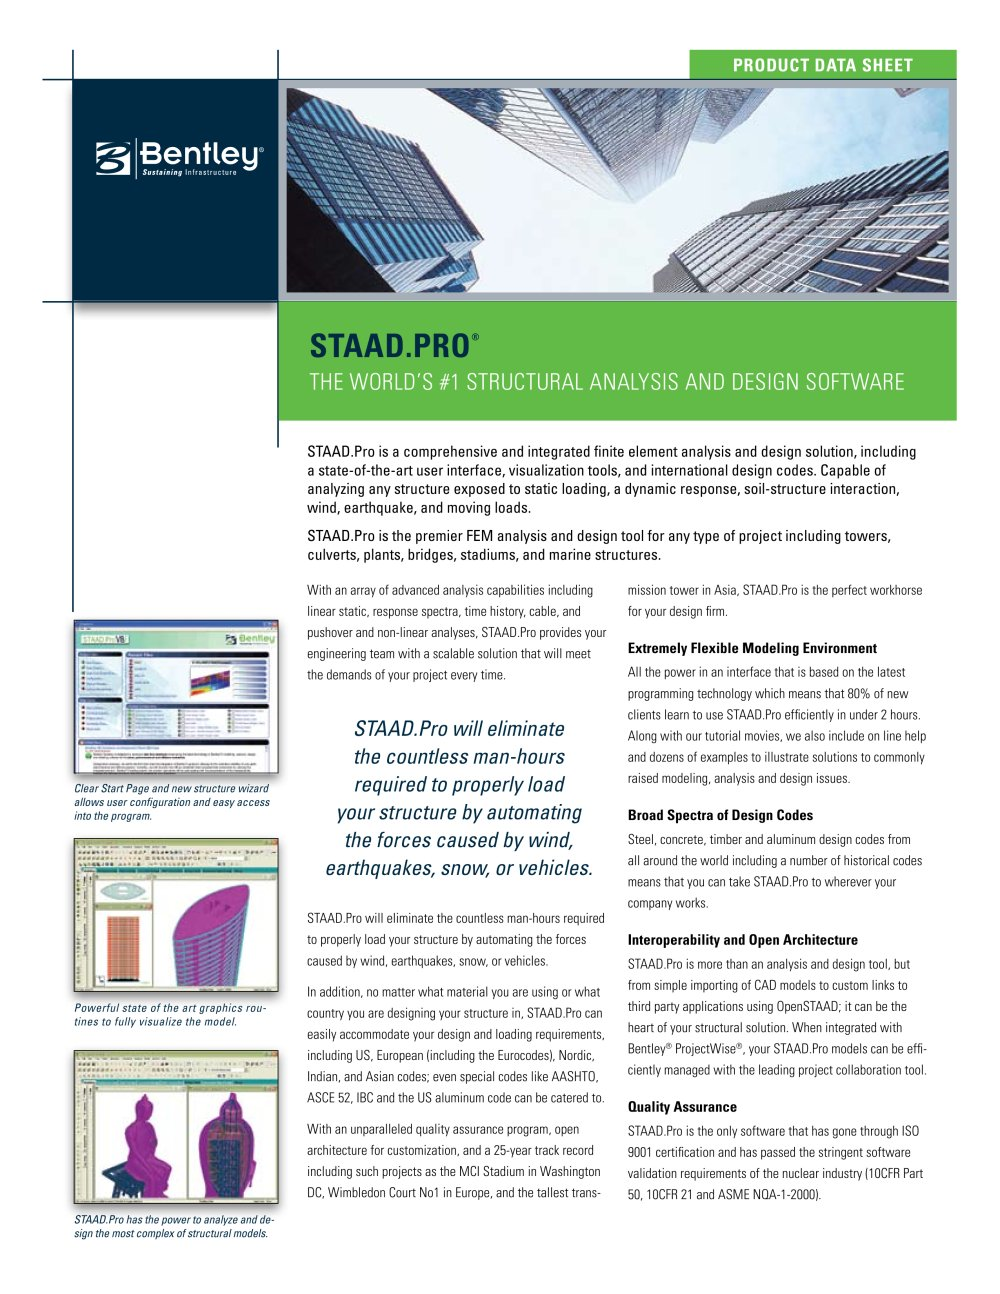 staad pro latest version